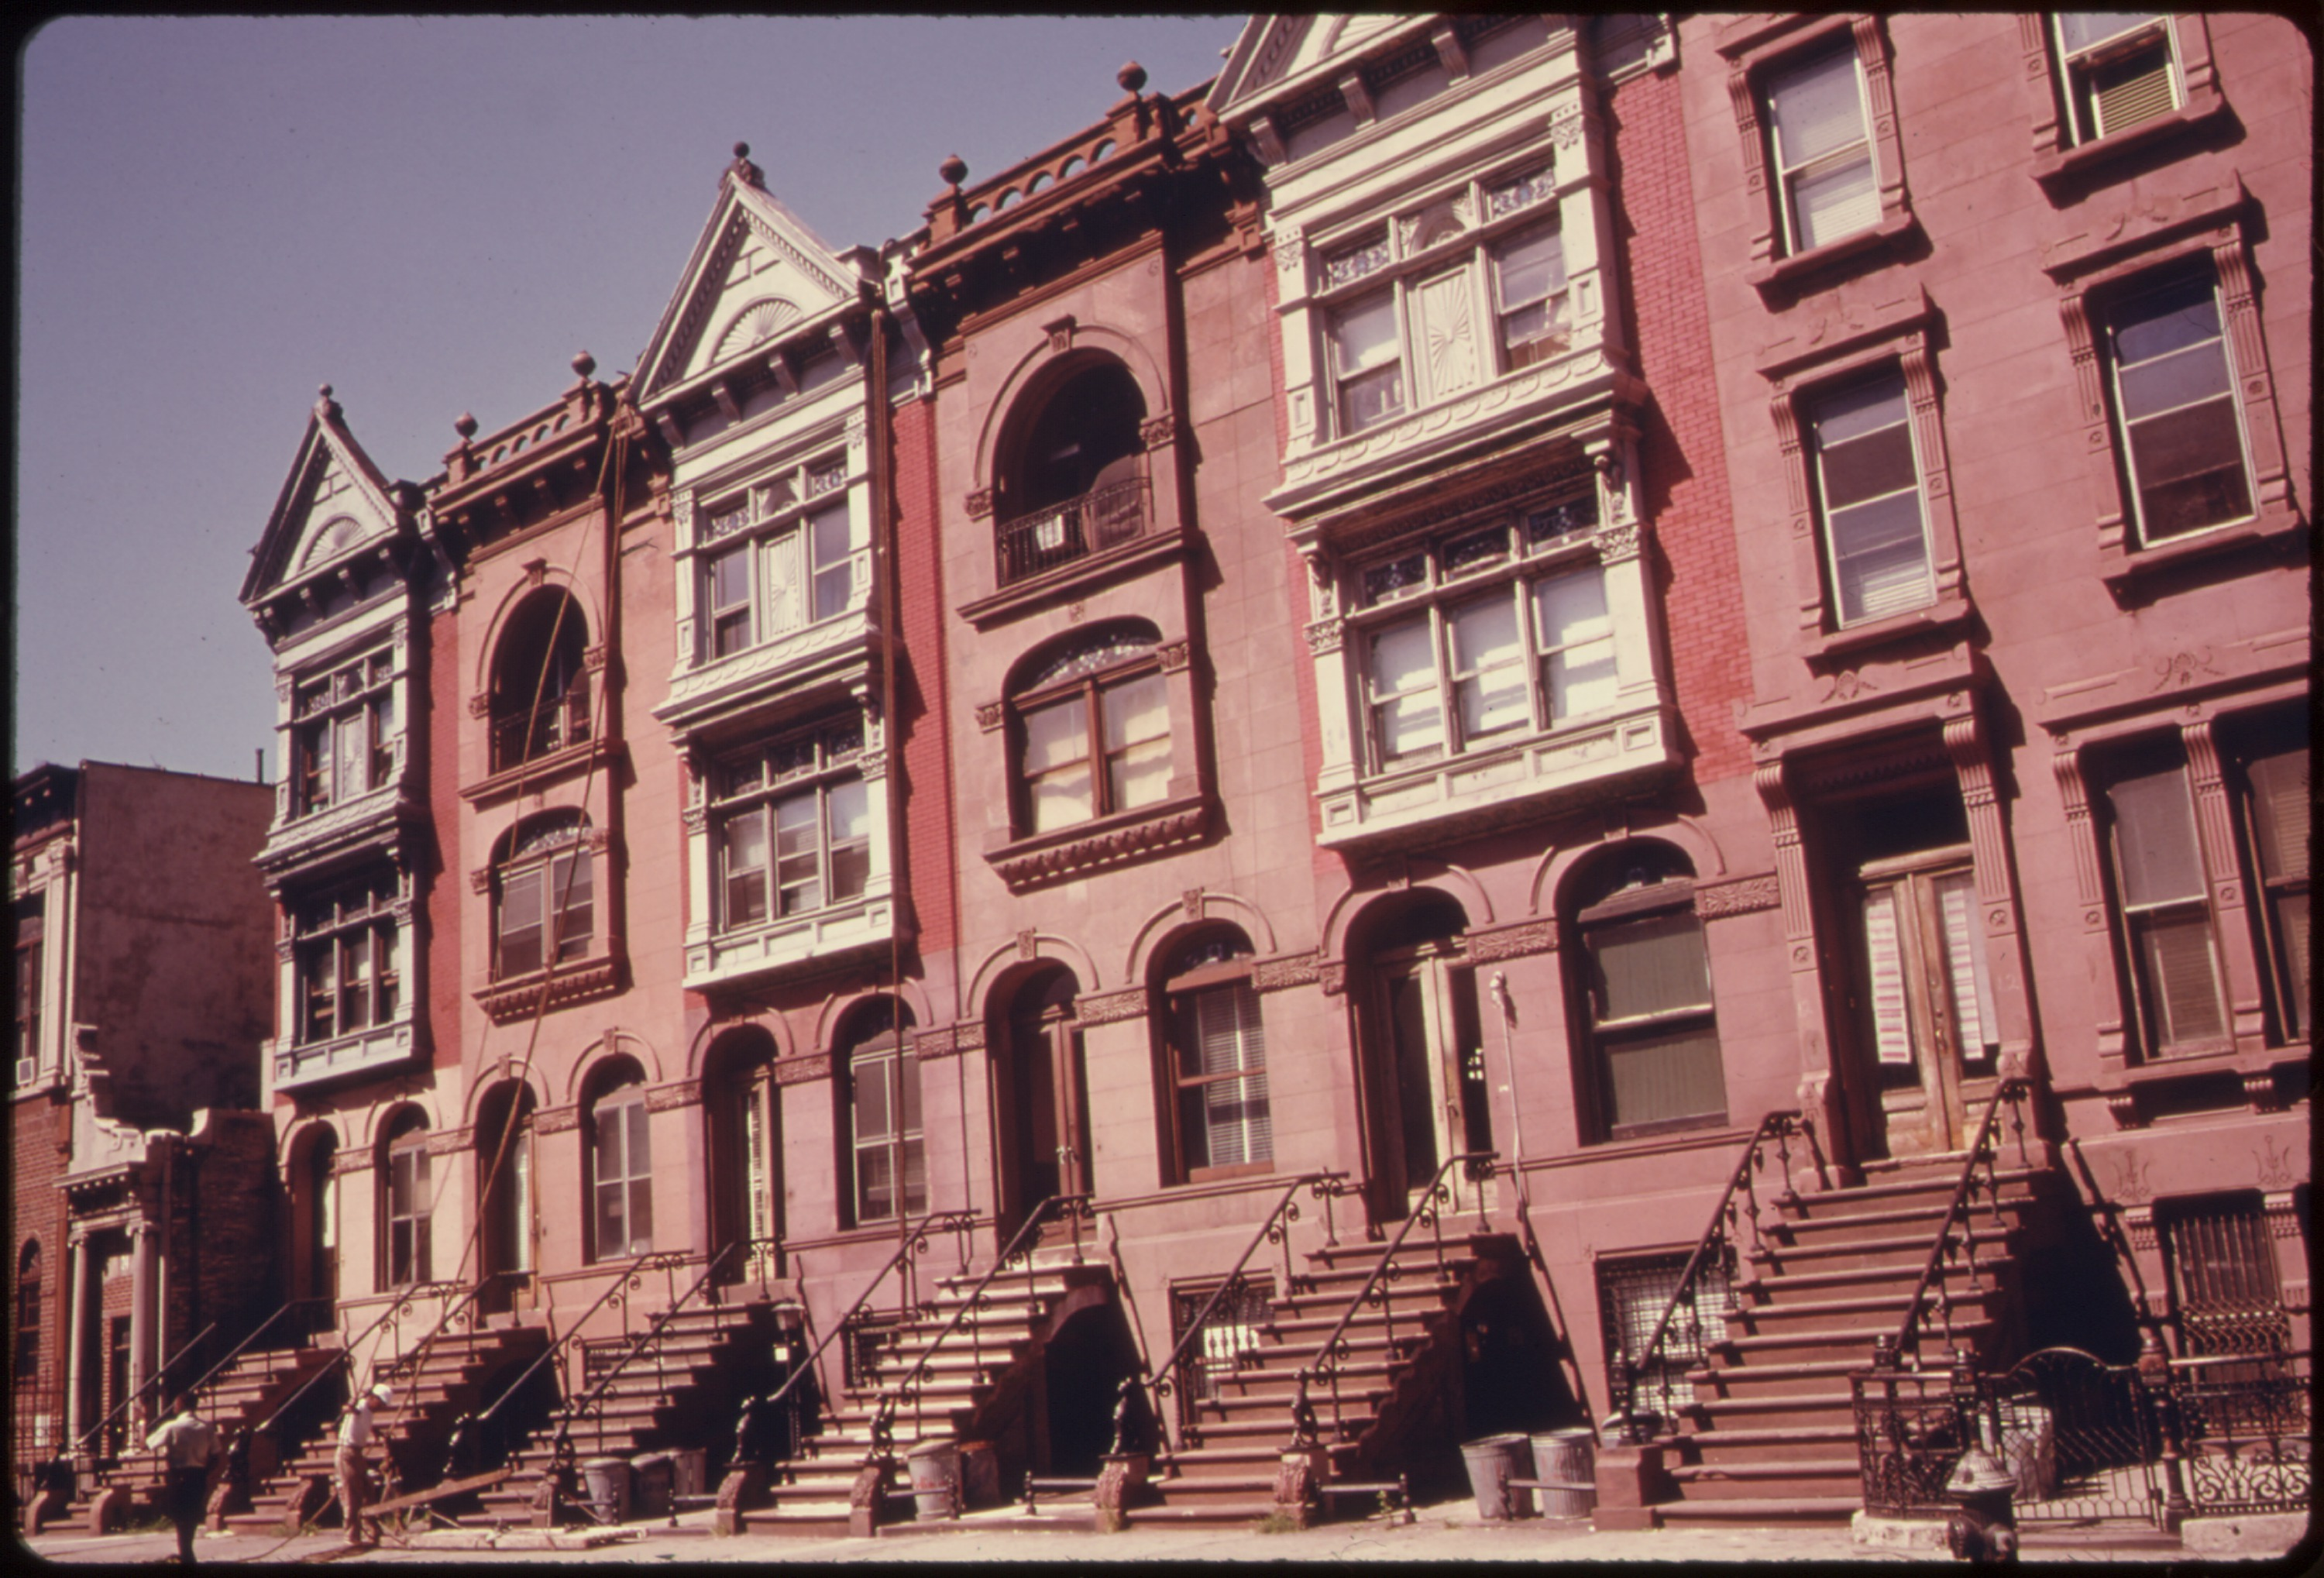 File:TURN OF THE CENTURY BROWNSTONE APARTMENTS BEING PAINTED AND RENOVATED  BY THEIR OWNERS IN